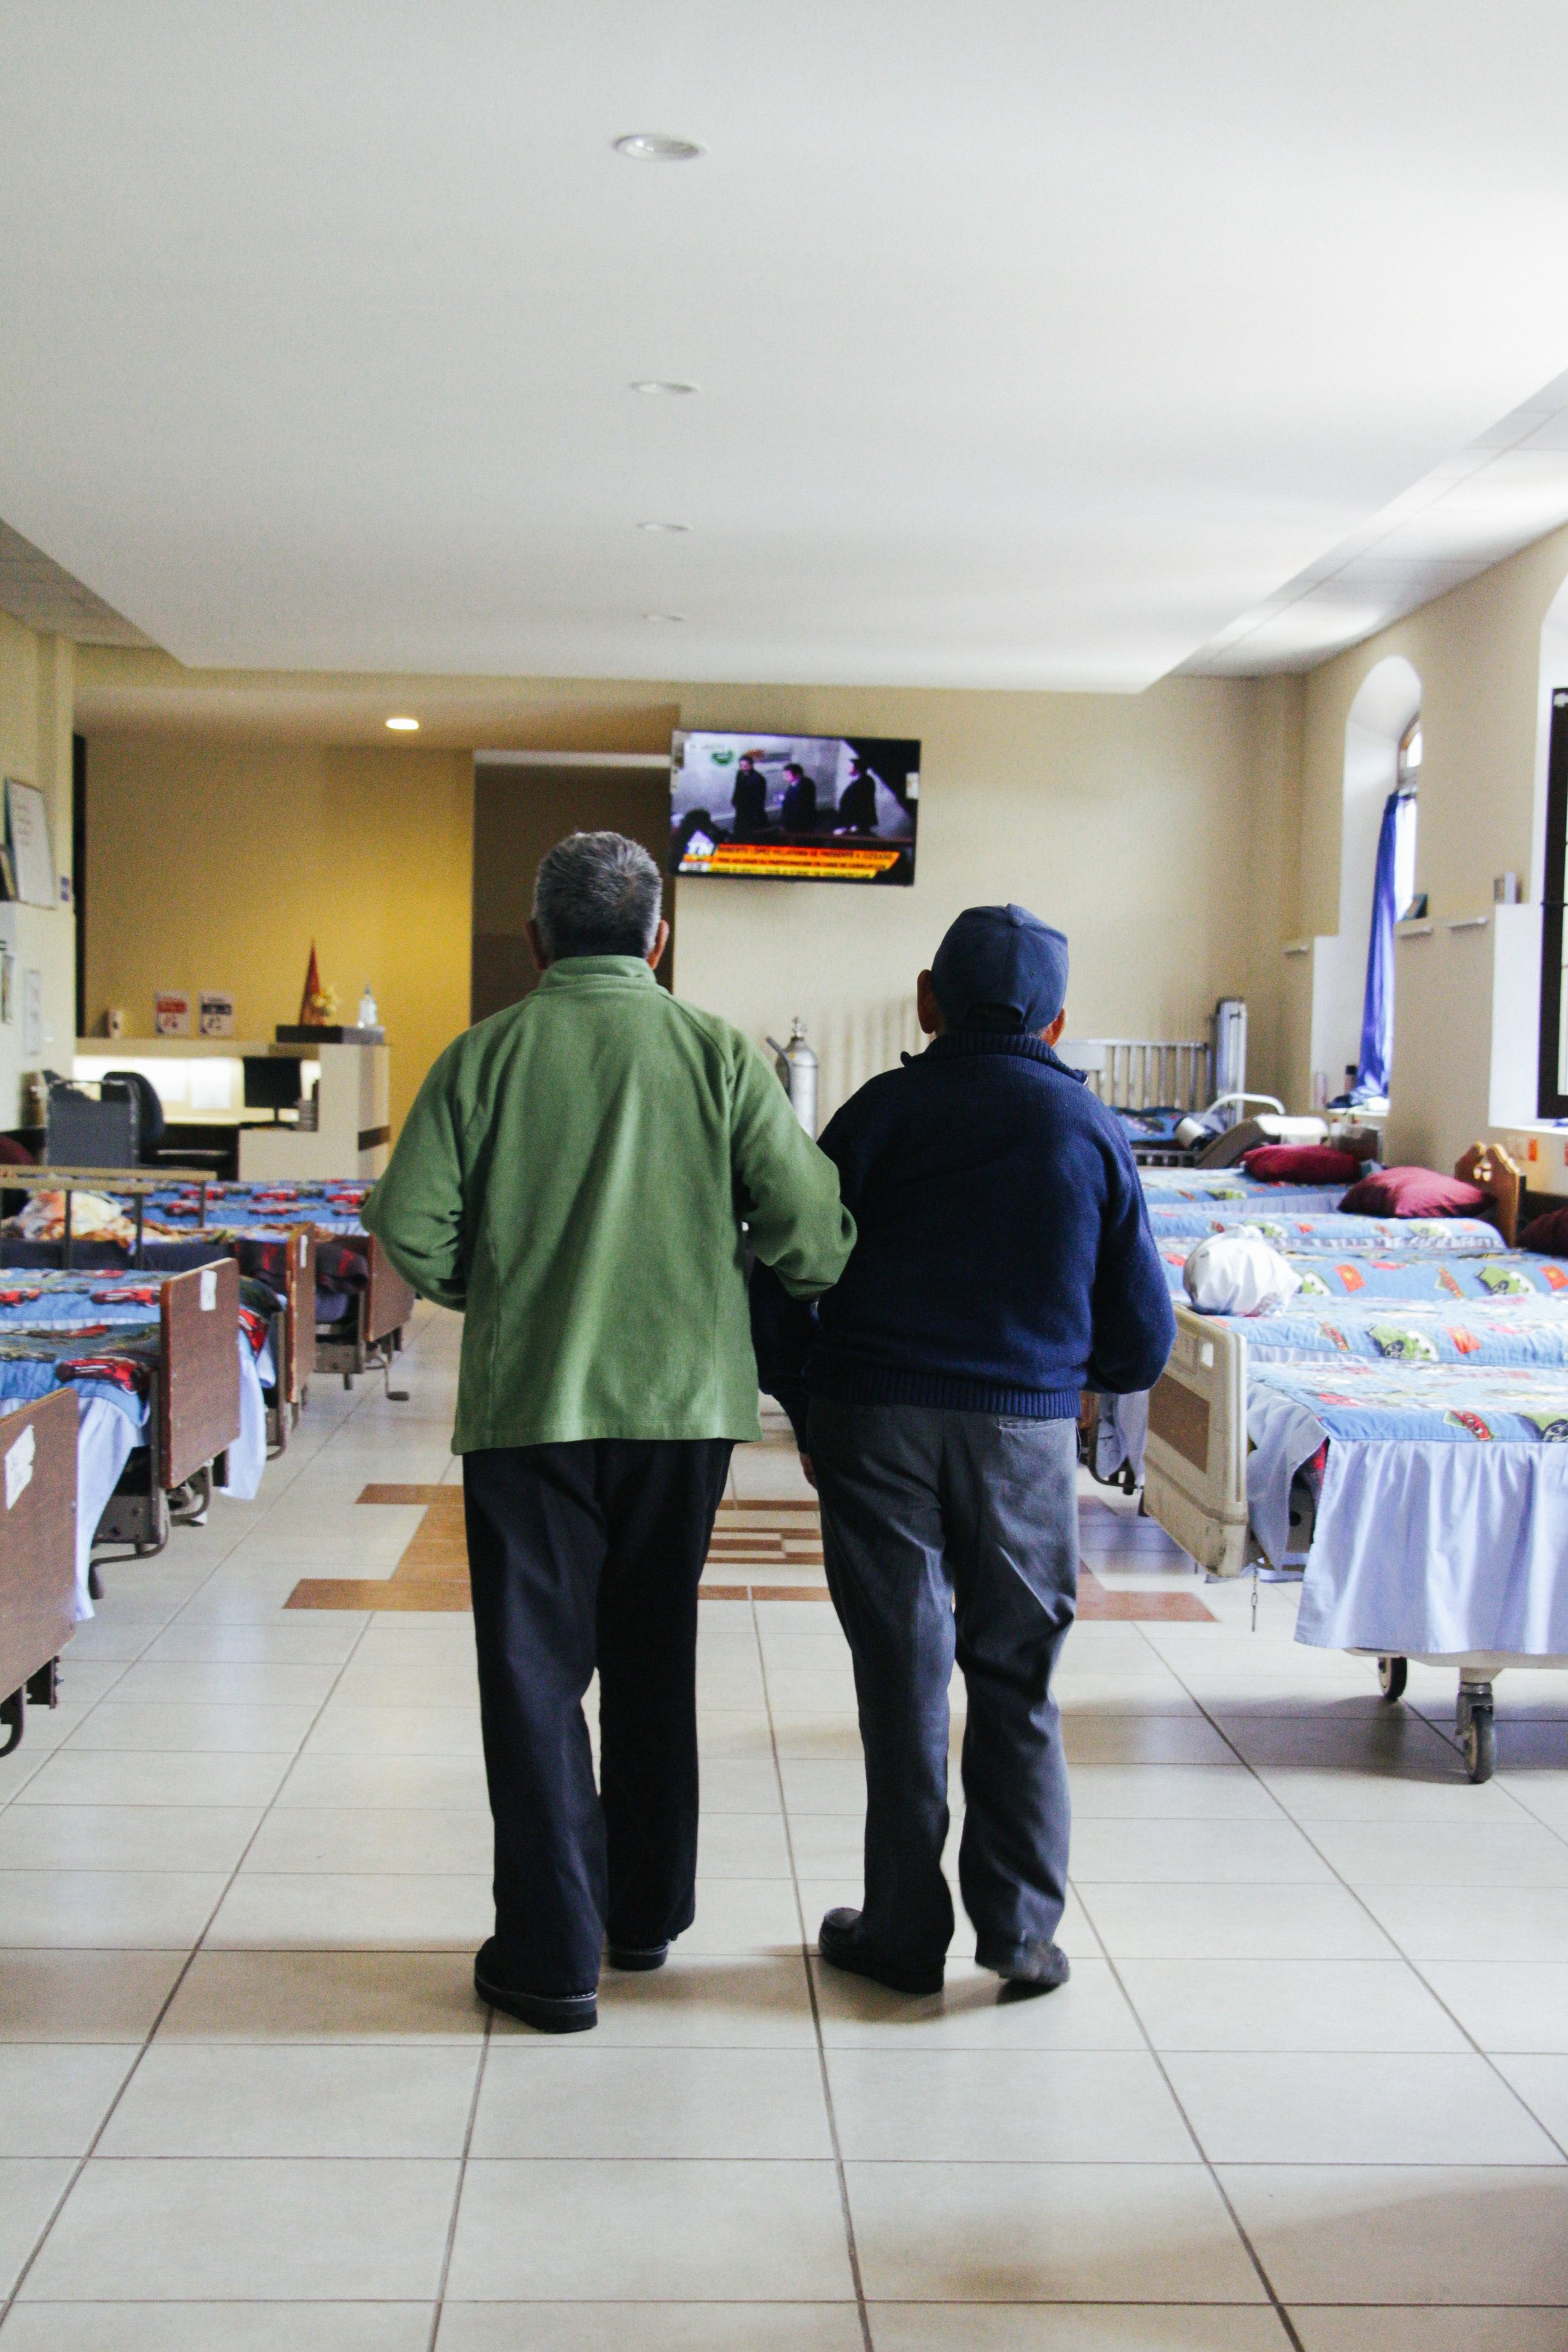 Photo by Isabela Sagastuy CATARINO PEREZ HELPS ANTONIO RAMÍREZ WALK BACK TO HIS BED AFTER EATING LUNCH AT VIRGEN DEL SOCORRO ON JAN. 16. PEREZ AND RAMIREZ MET IN ANTIGUA AND HAVE BEEN GOOD FRIENDS EVER SINCE.